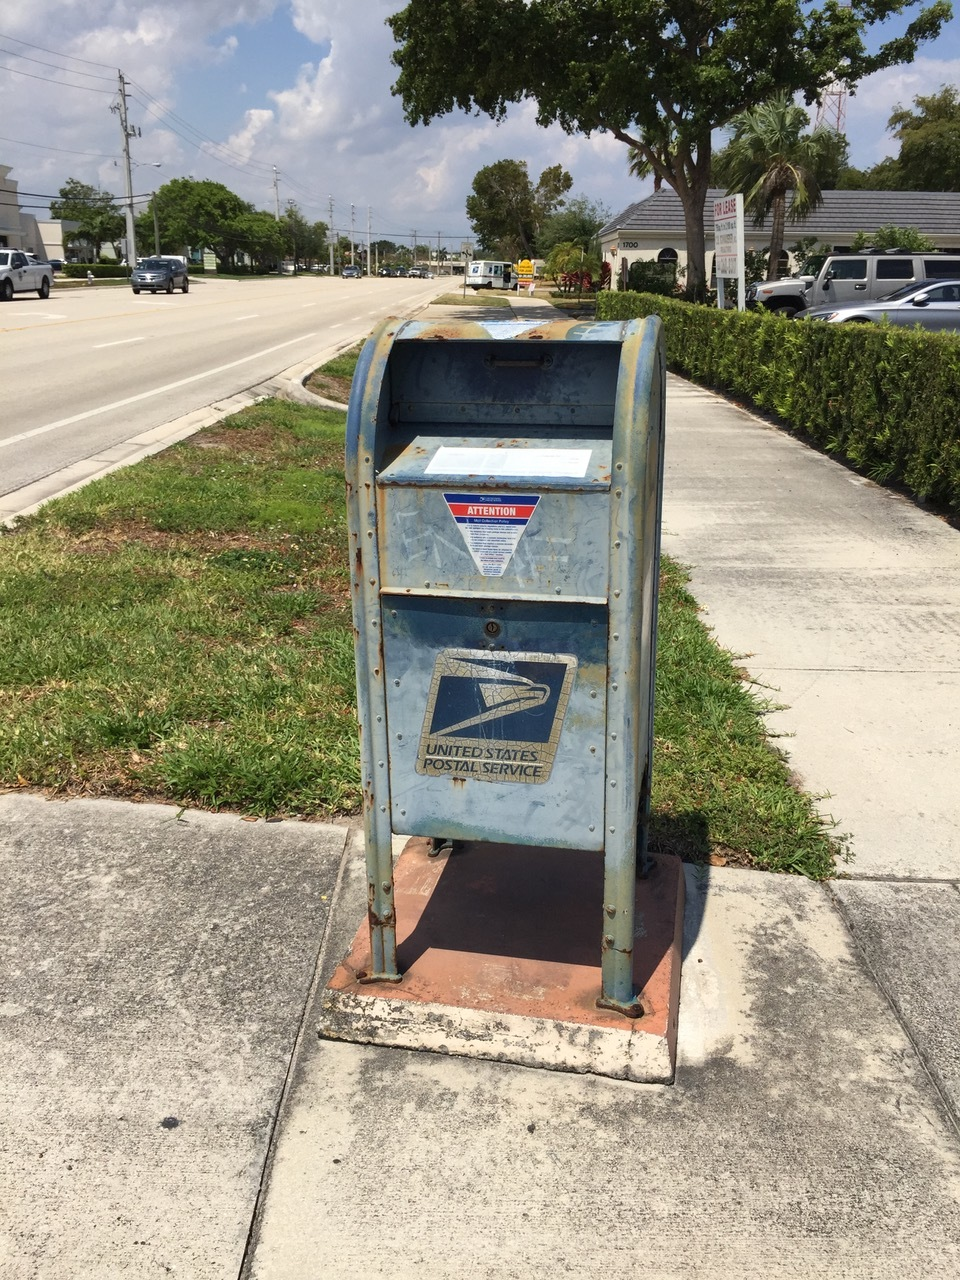 Is this to be our new Boca raton post office?